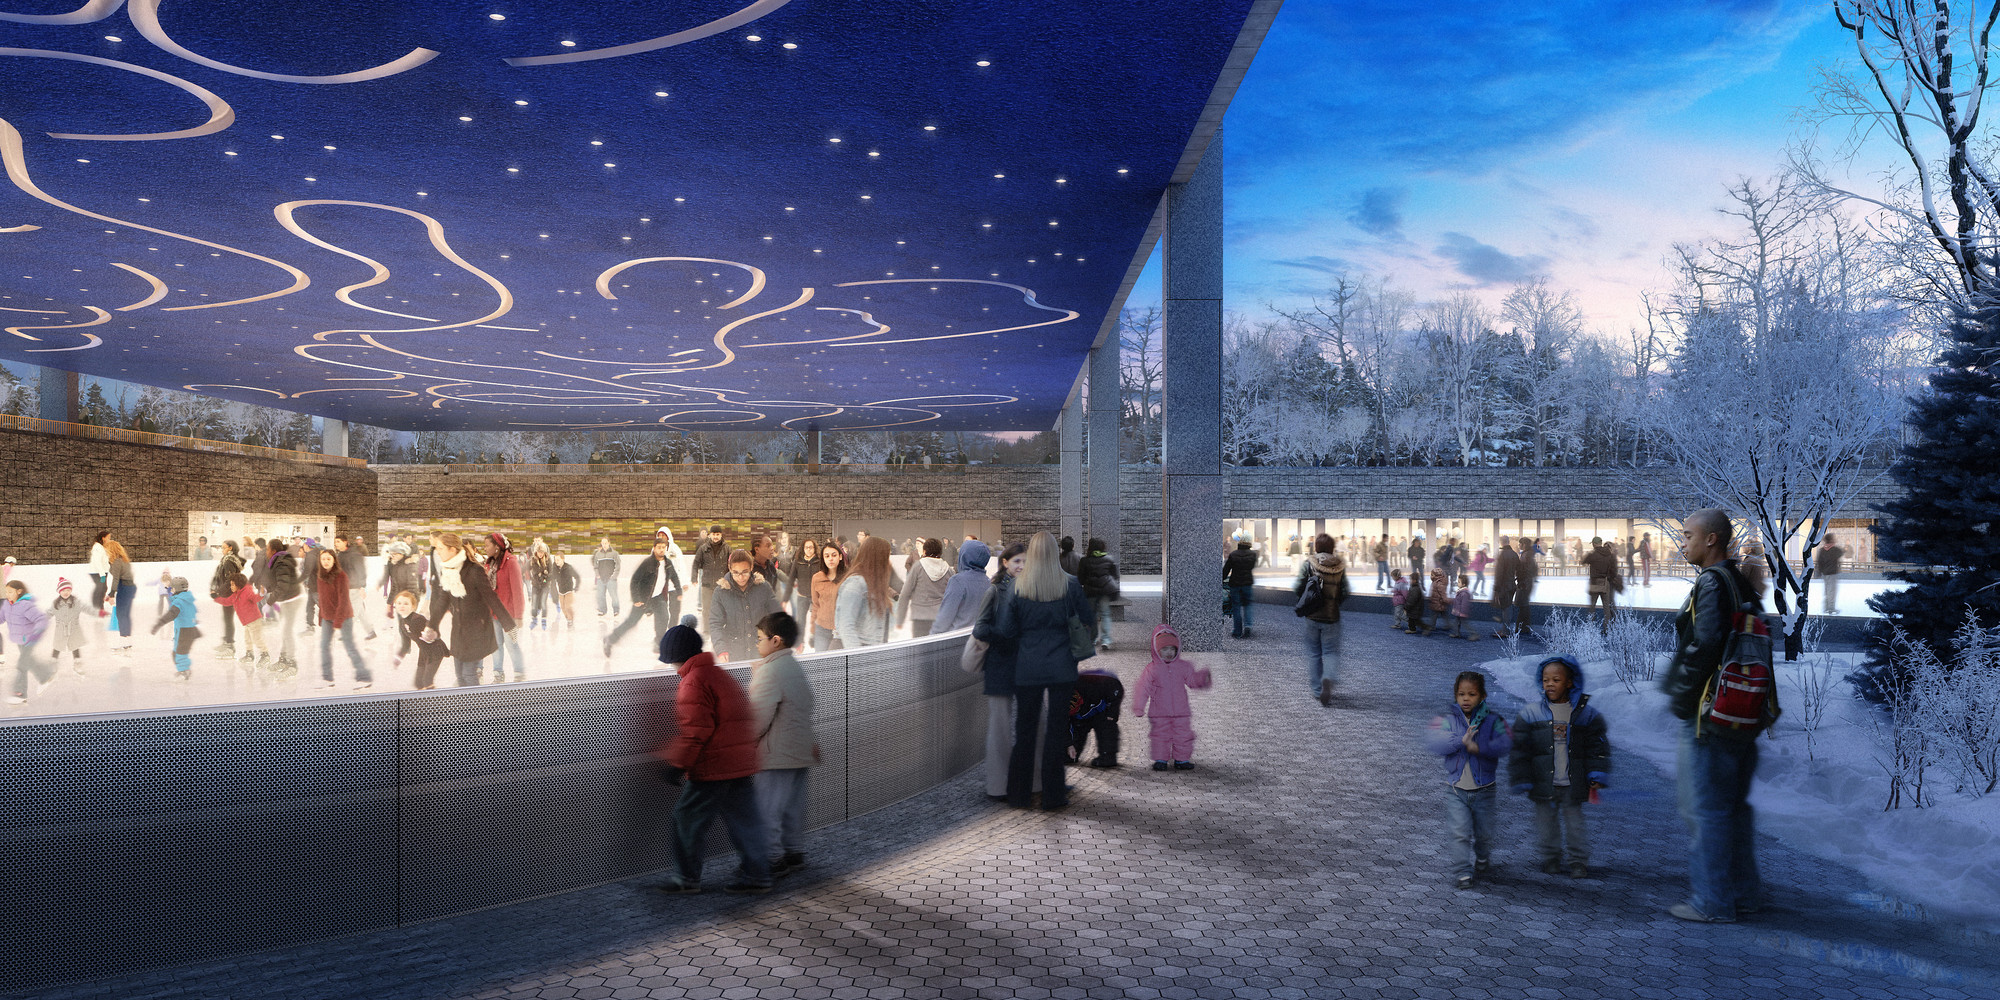 Tod Williams Billie Tsien Architects Design Ice Rink for NYC, Courtesy of Tod Williams Billie Tsien Architects / Dbox